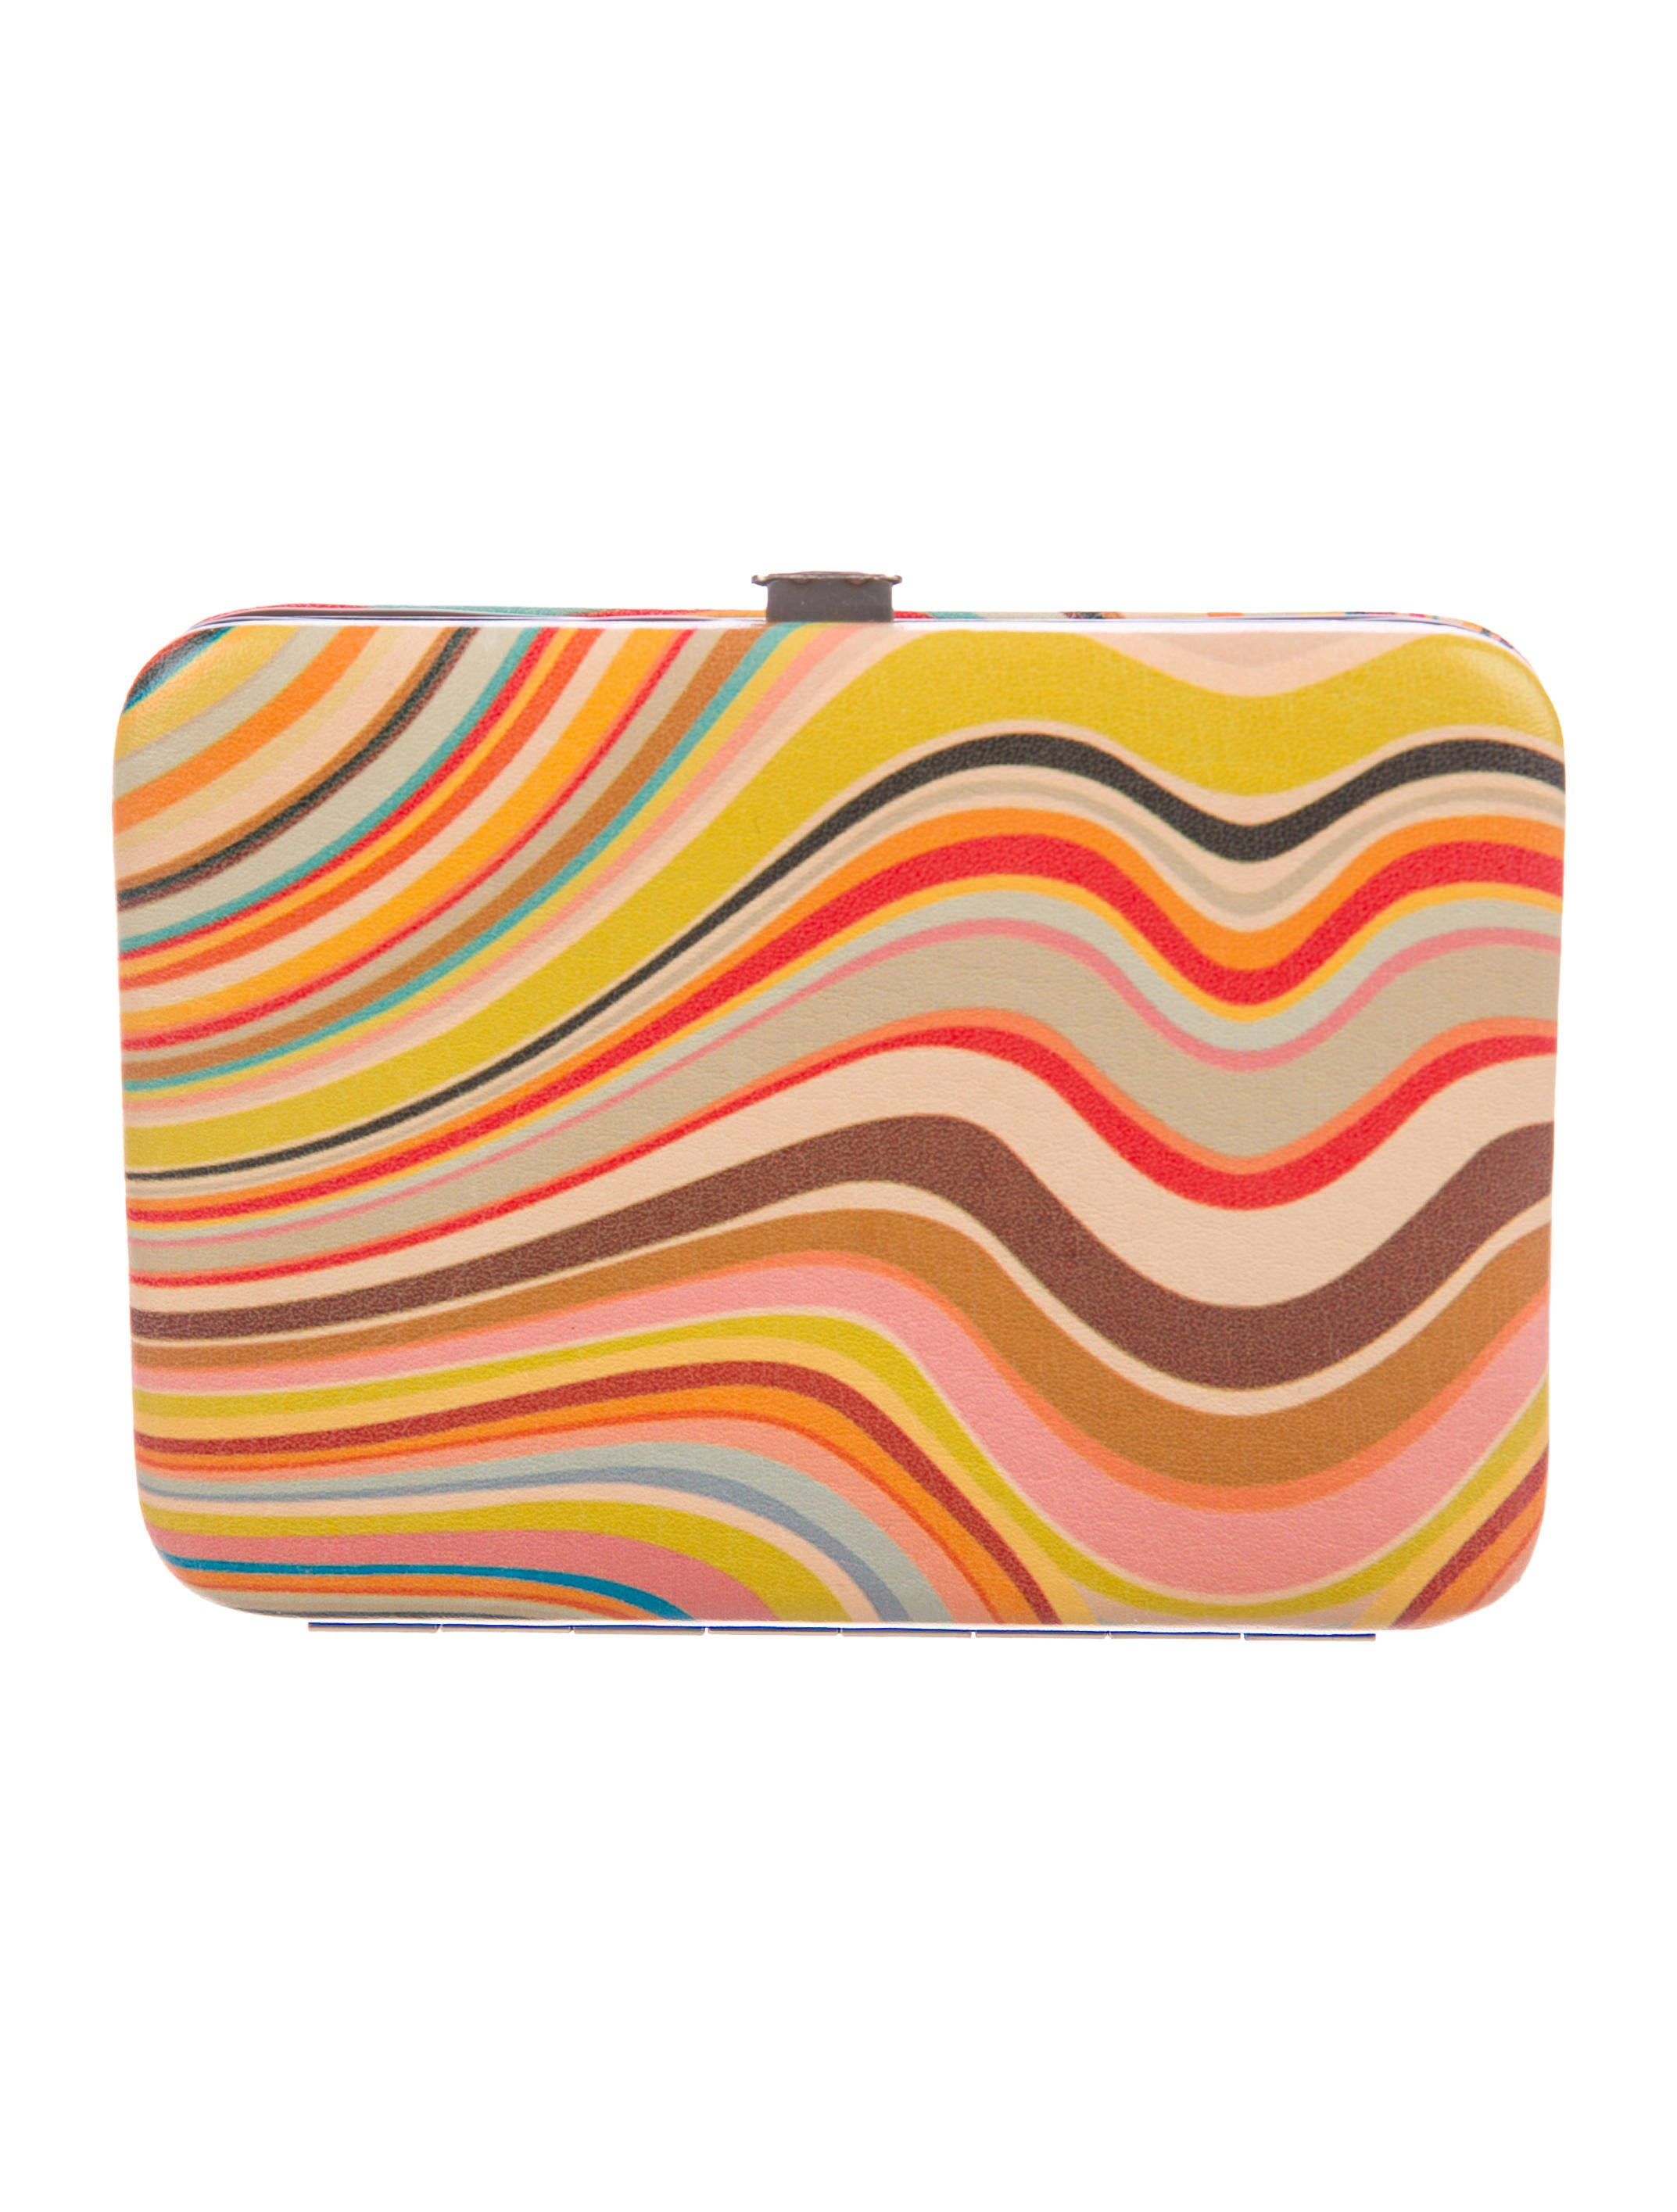 Paul Smith Leather Business Card Holder - Accessories - WPS25856 ...